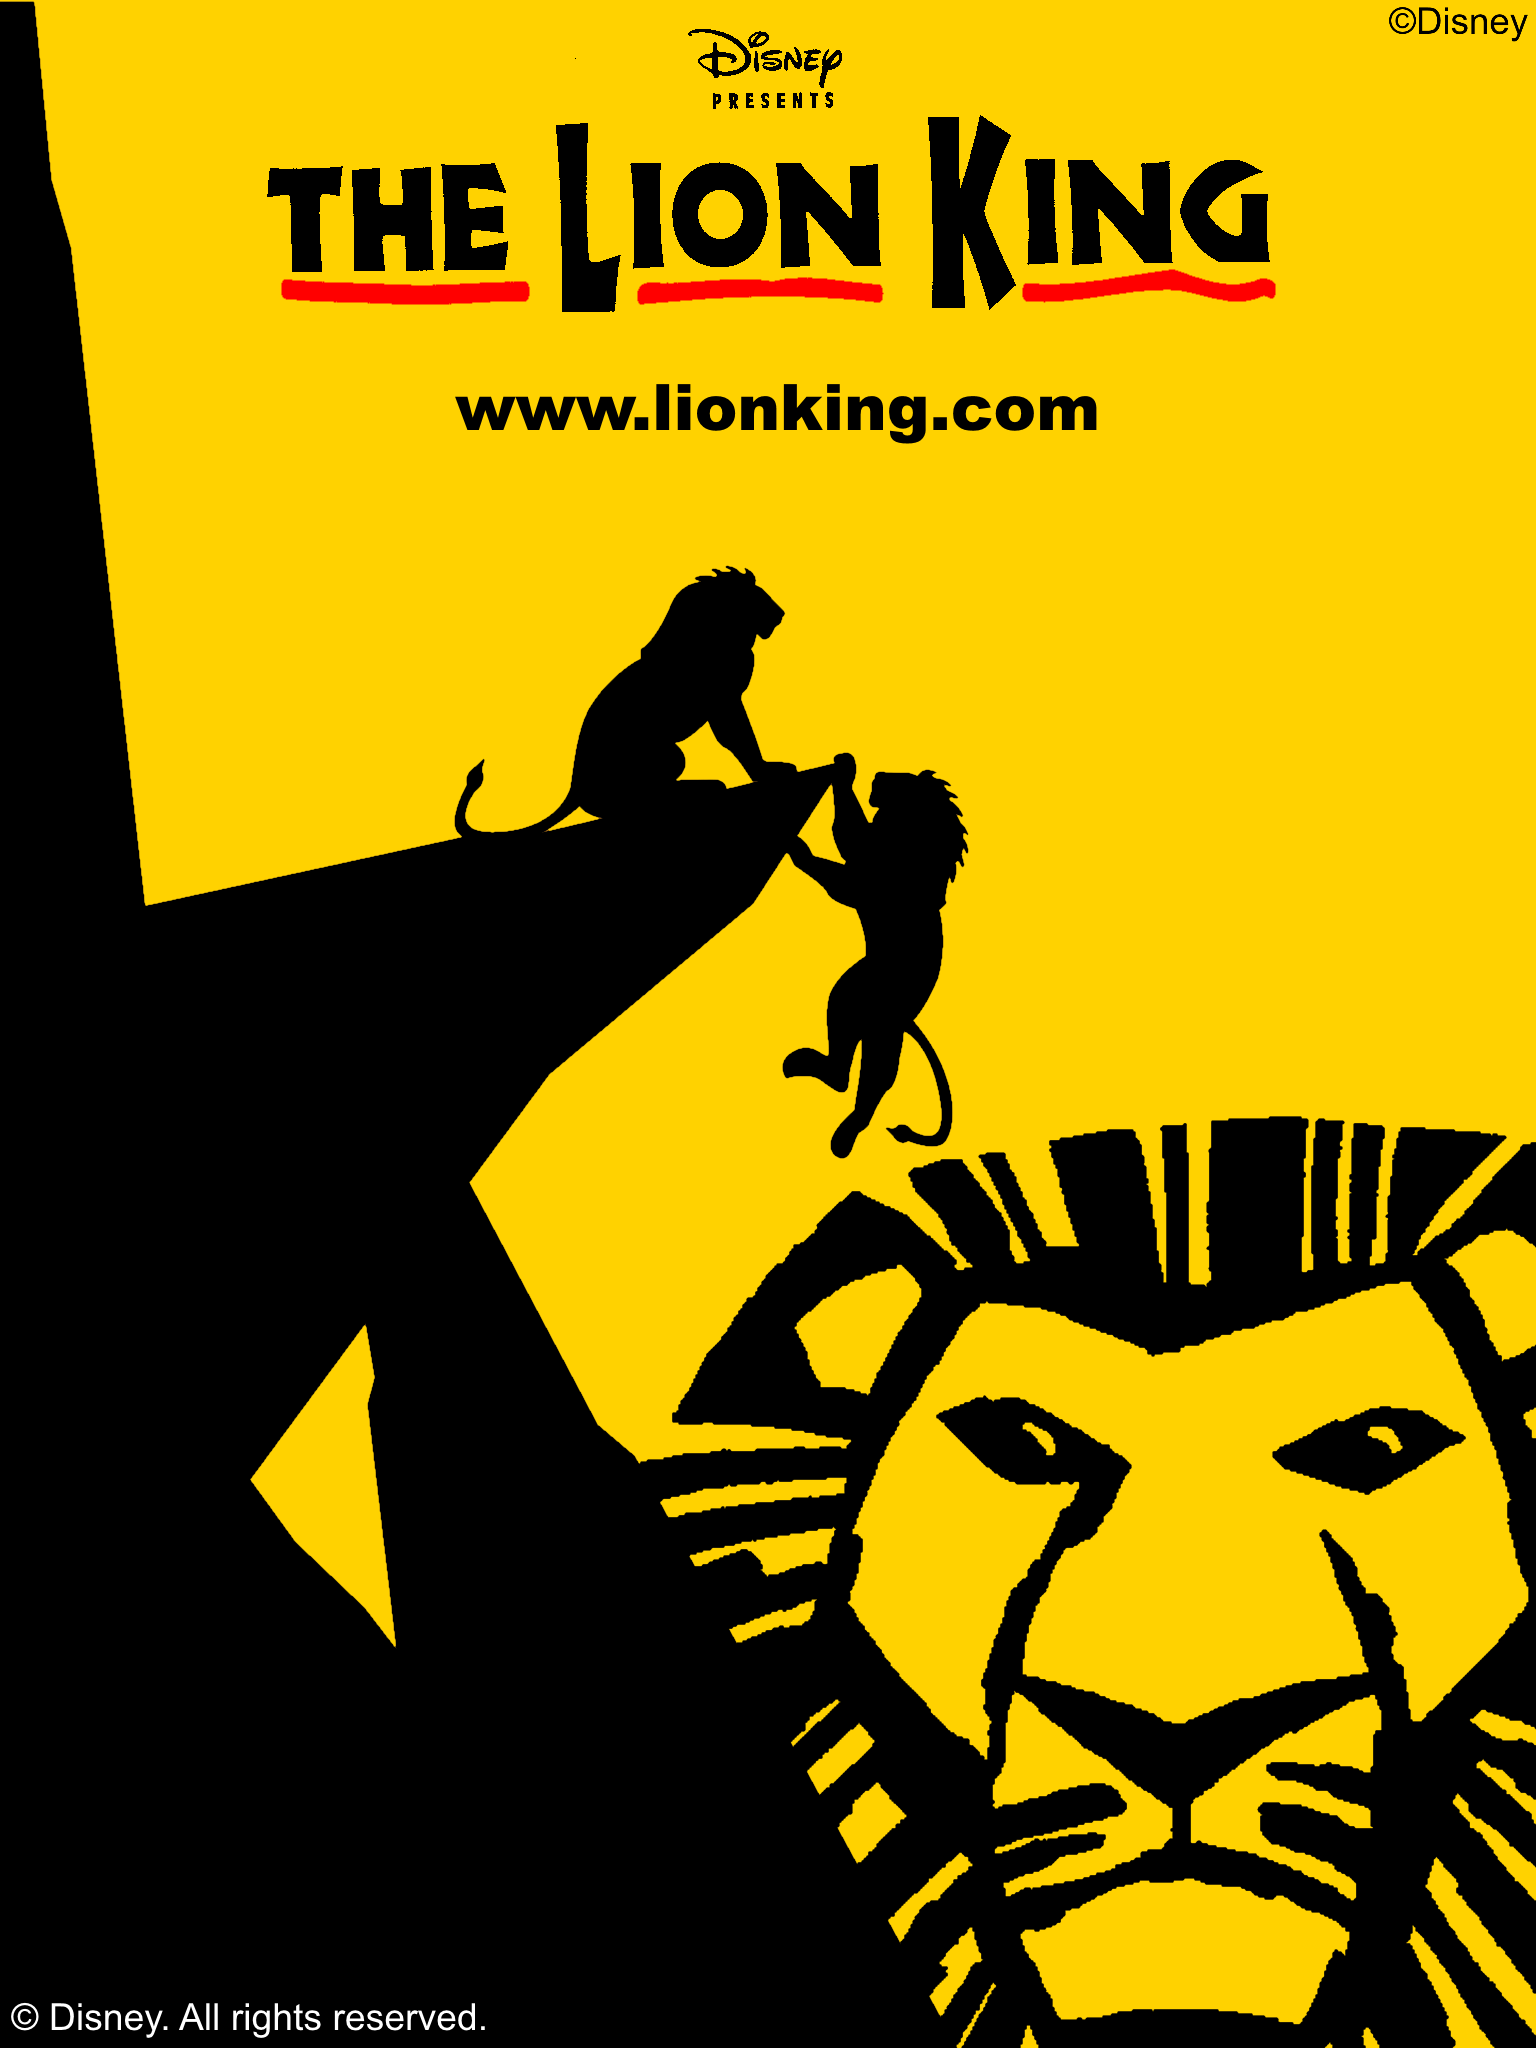 The Lion King Musical London Images New Lion King Broadway Musical